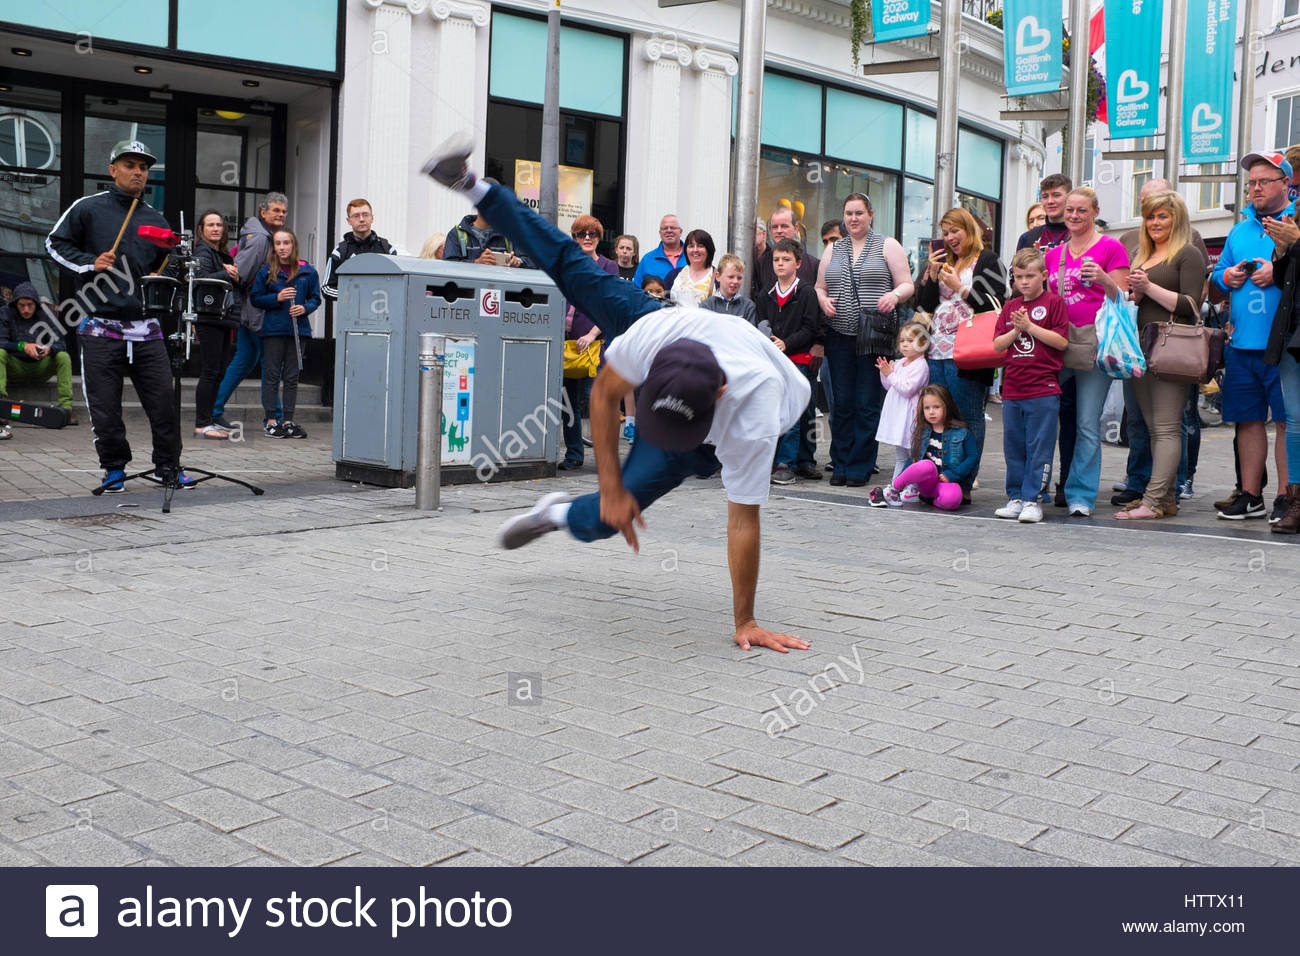 Breakdancers on Shop Street, Galway City, Ireland - Stock Image